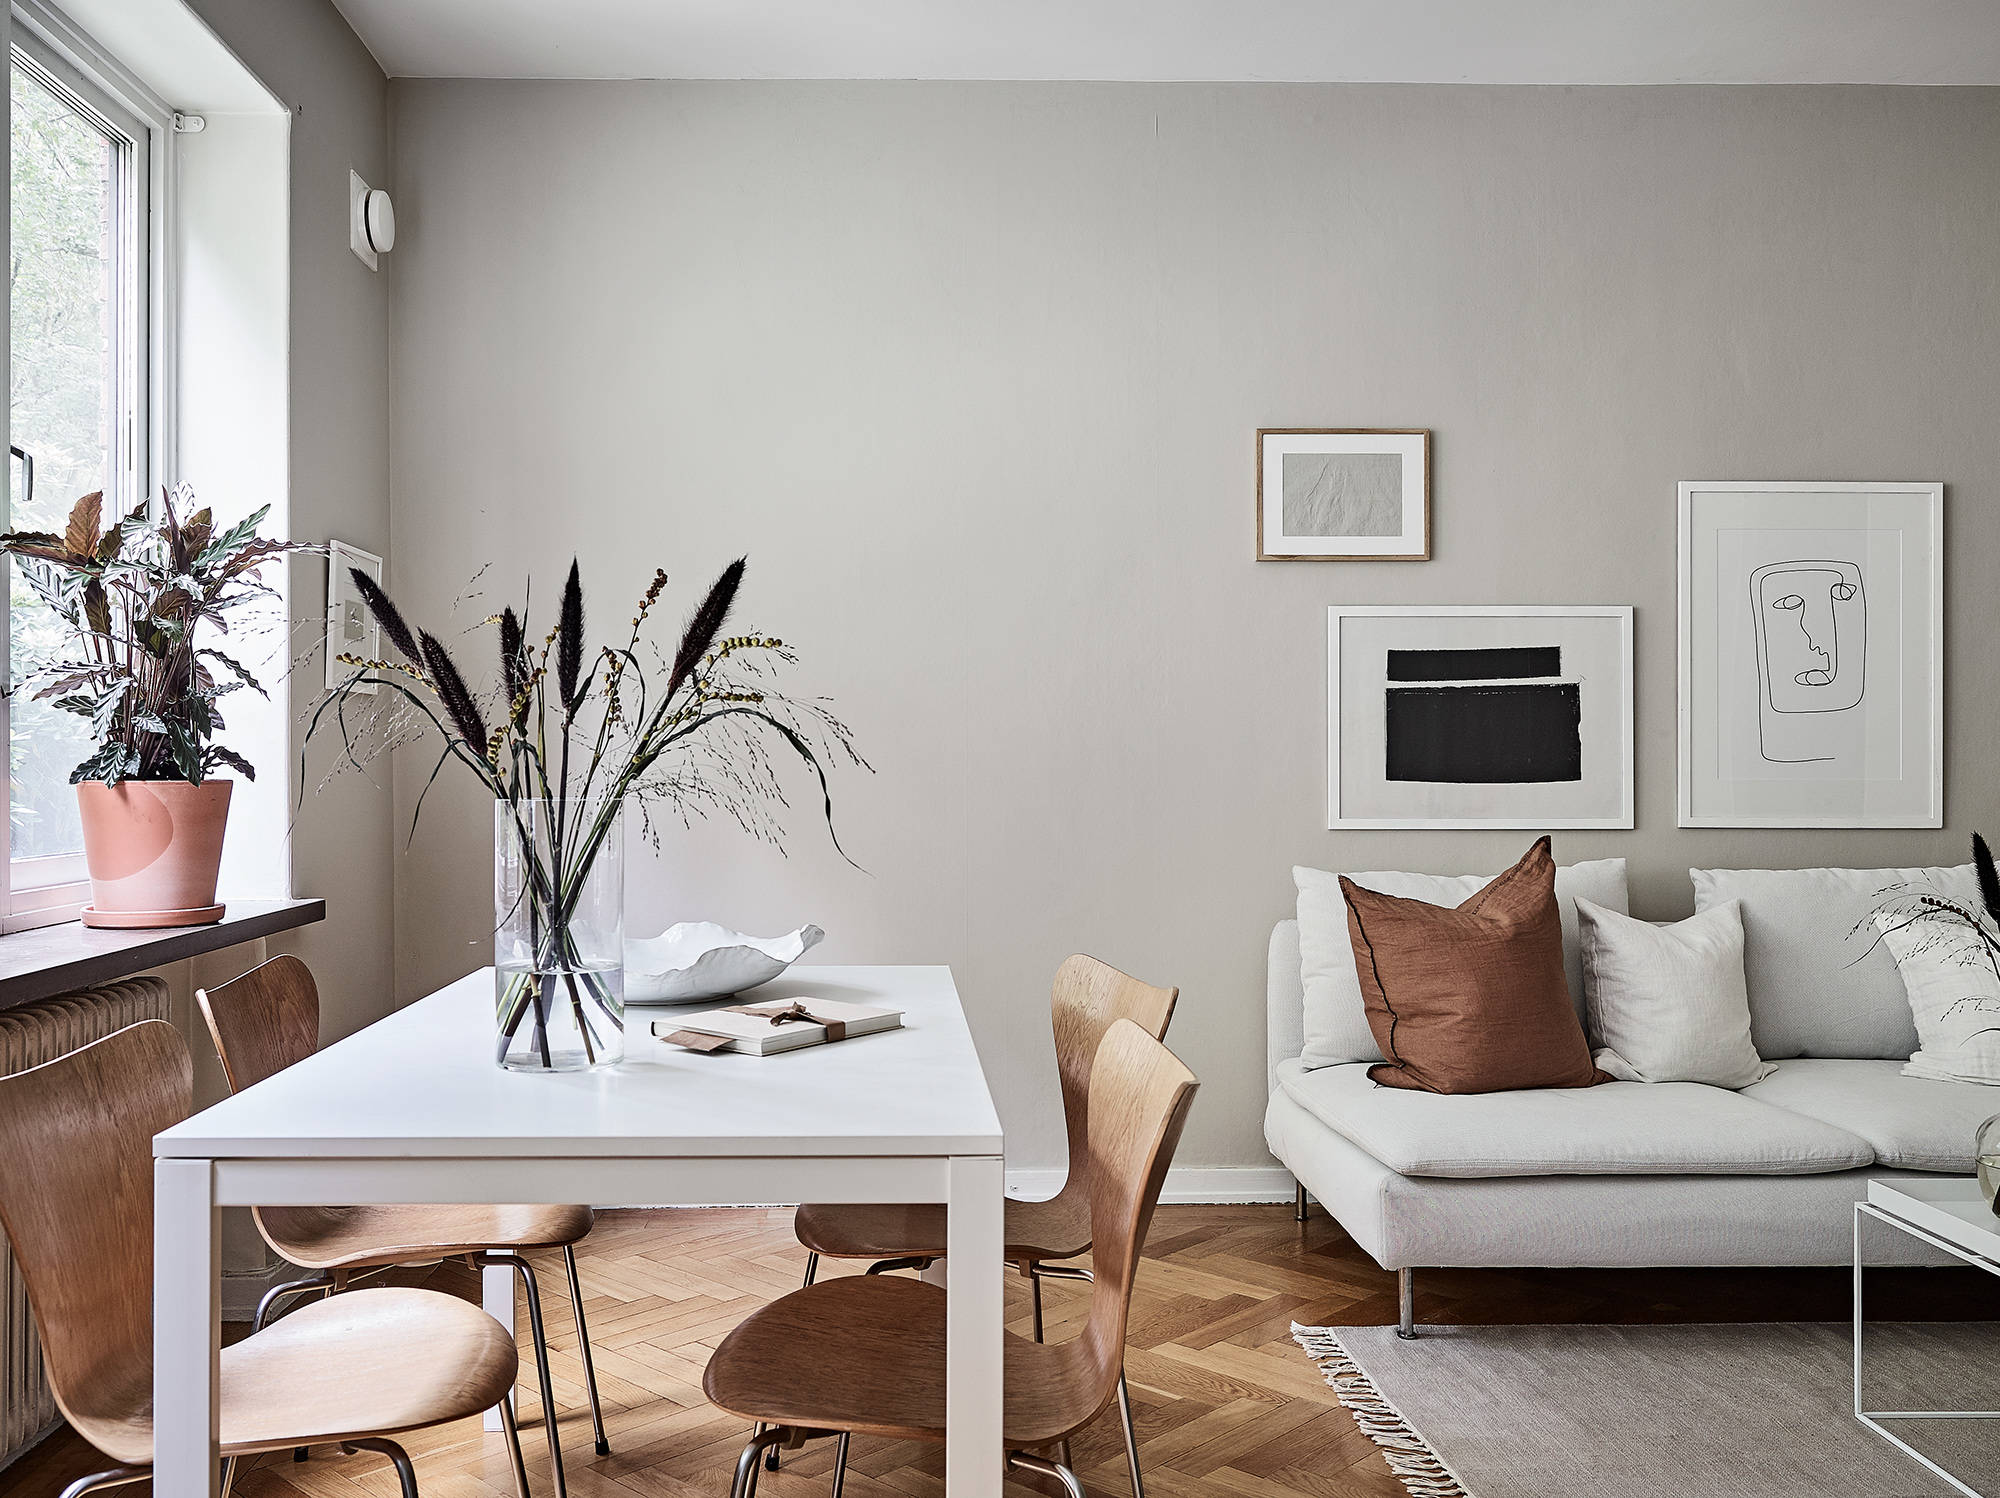 Minimal home with warm colors - via Coco Lapine Design blog ...